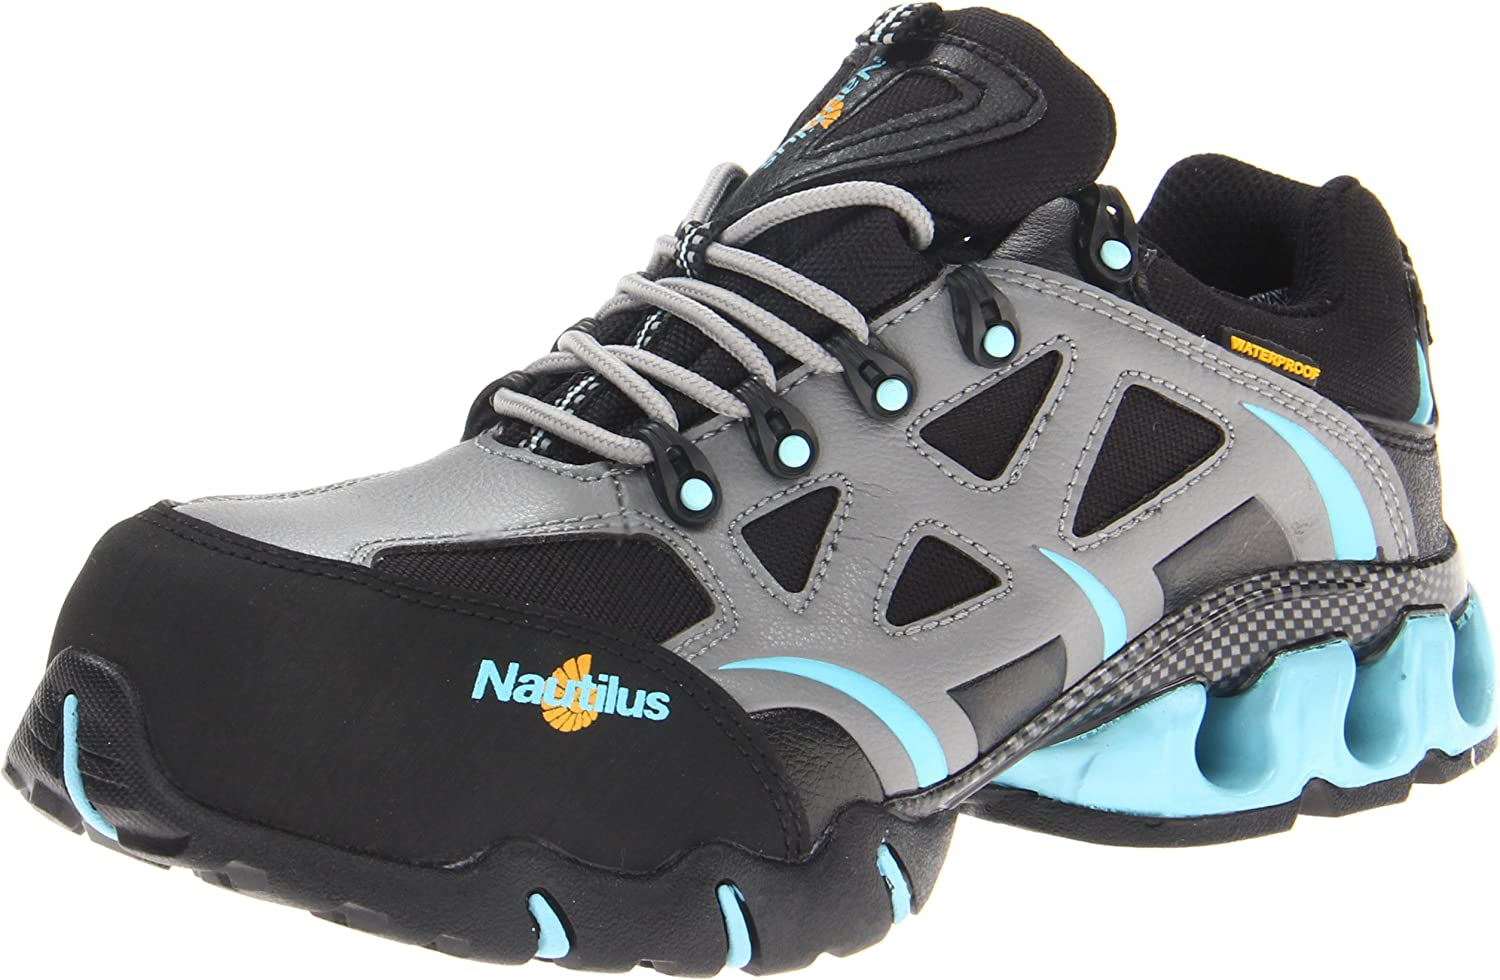 Nautilus Safety Footwear N1852 Women's Comp Toe Shoe New Ranking TOP19 product Work